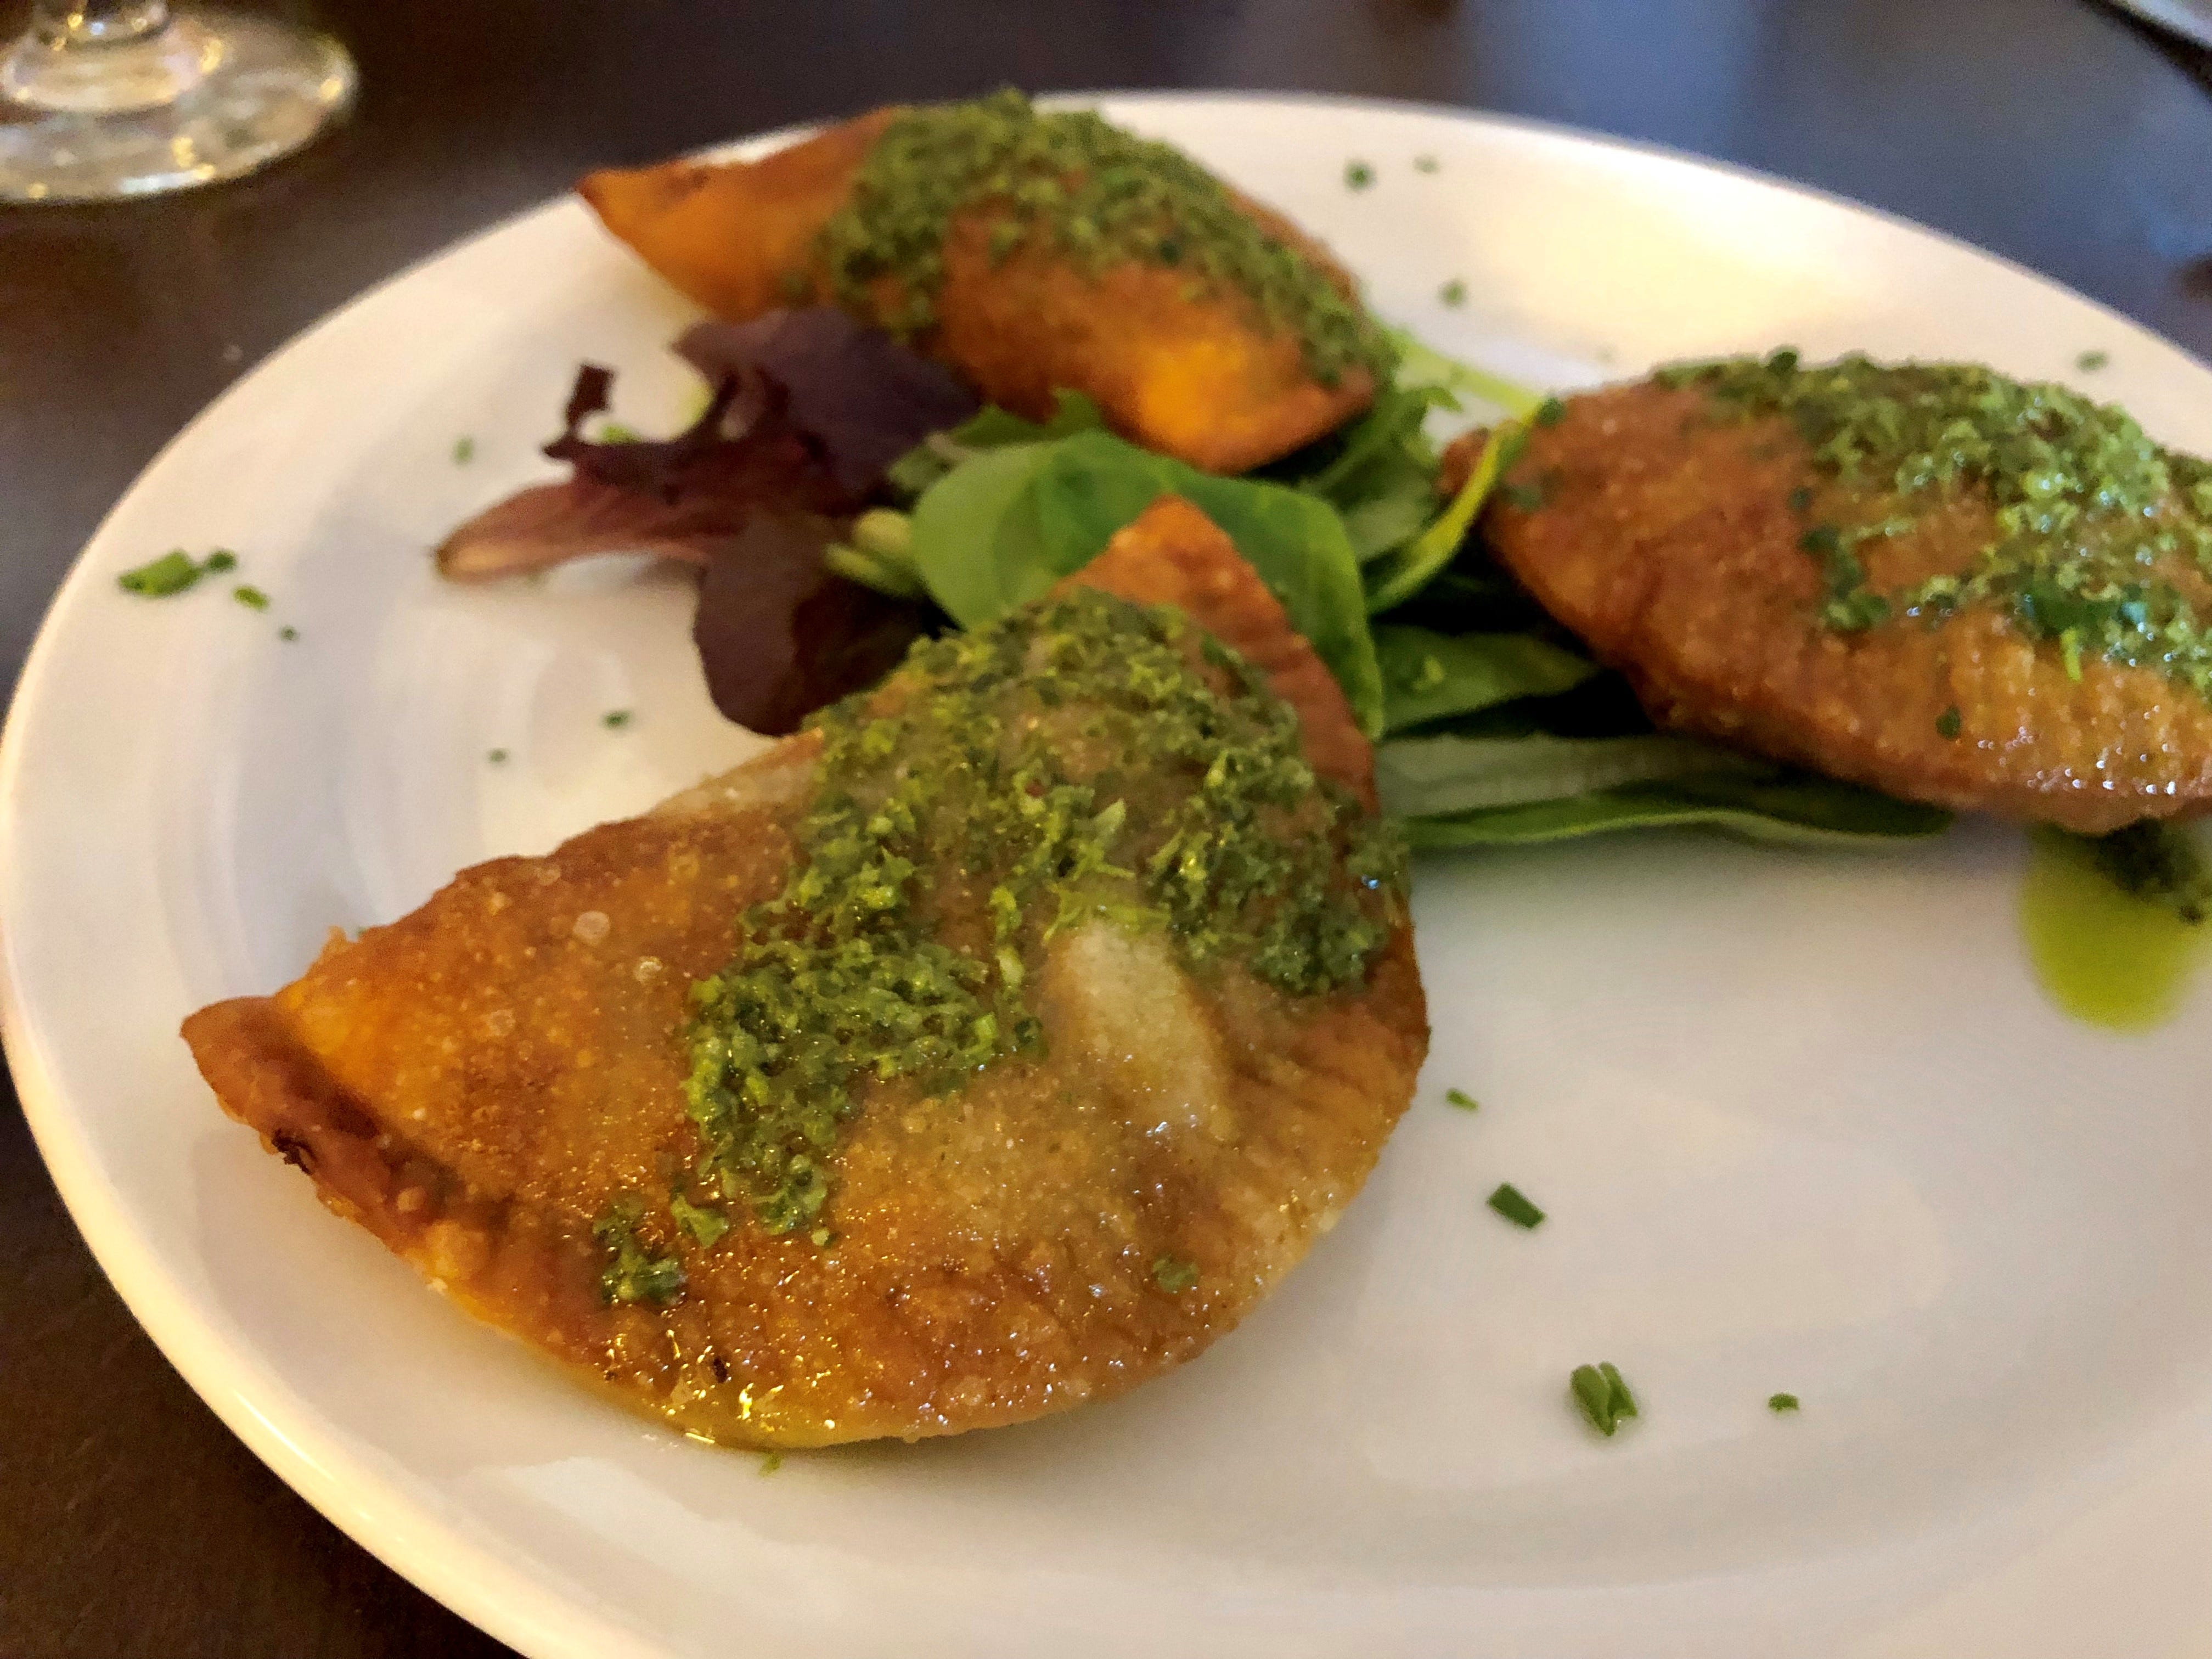 Empanadas are stuffed with chicken and drizzled in salsa verde at La Trattoria Cafe Napoli in south Fort Myers.